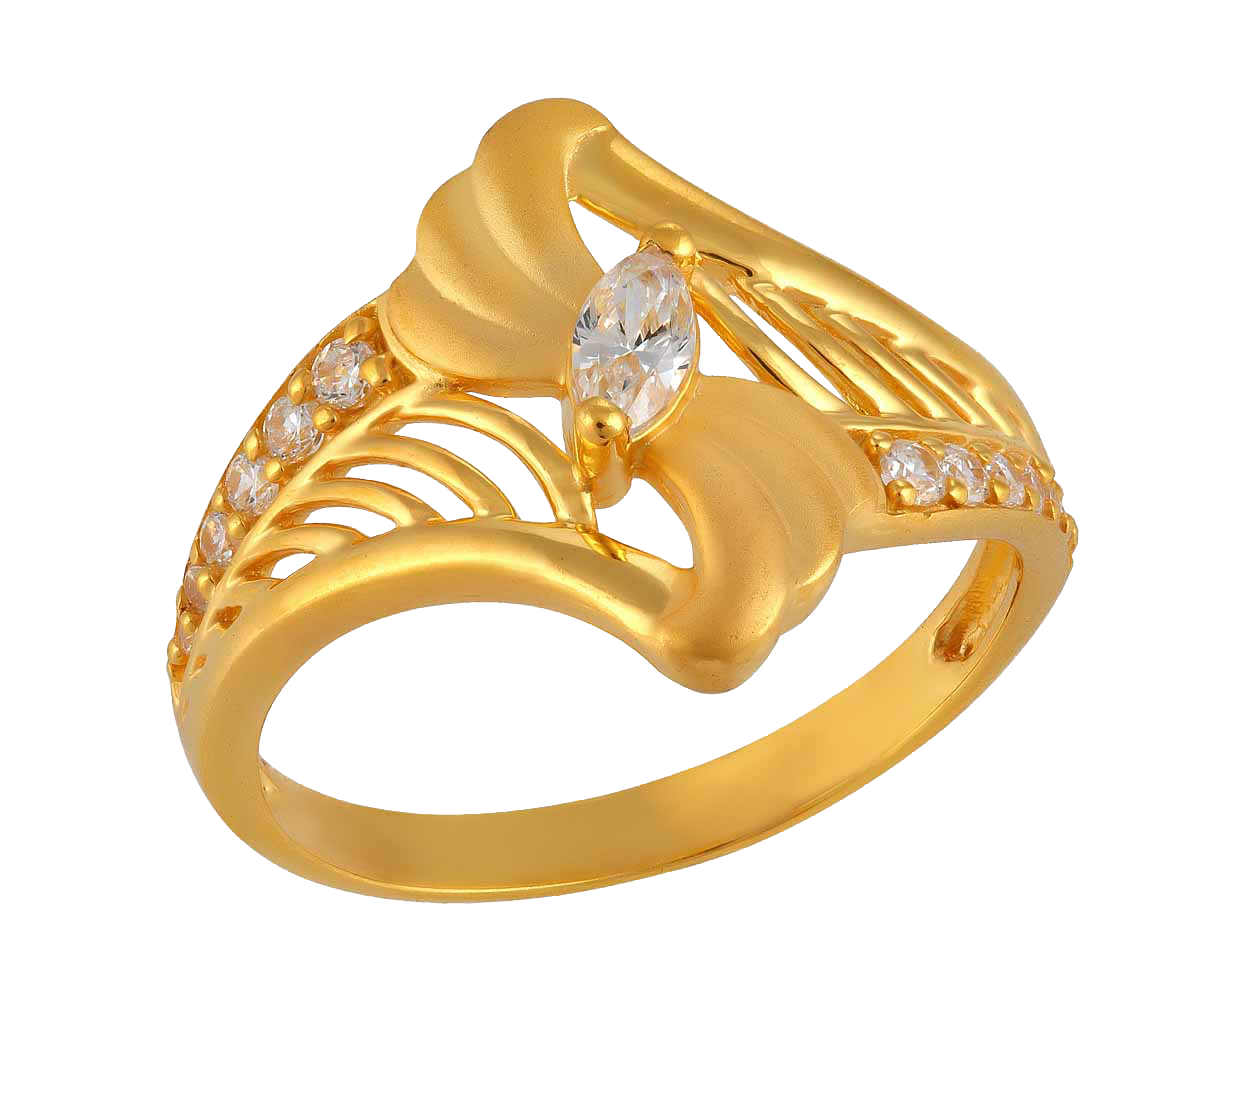 Download Gold Rings HQ PNG Image.